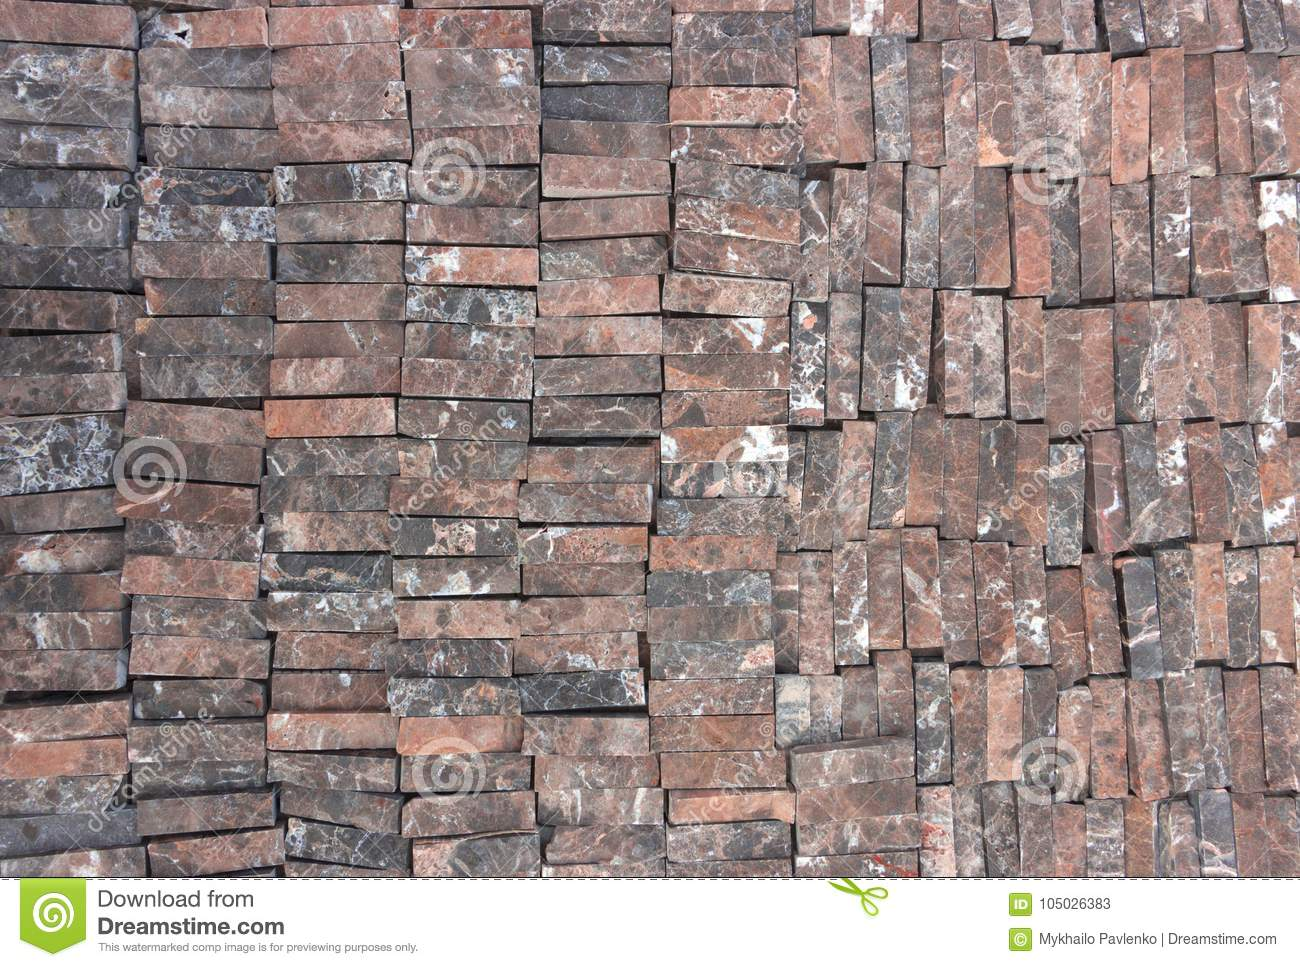 Brick tiles - a popular building material for facade cladding 75